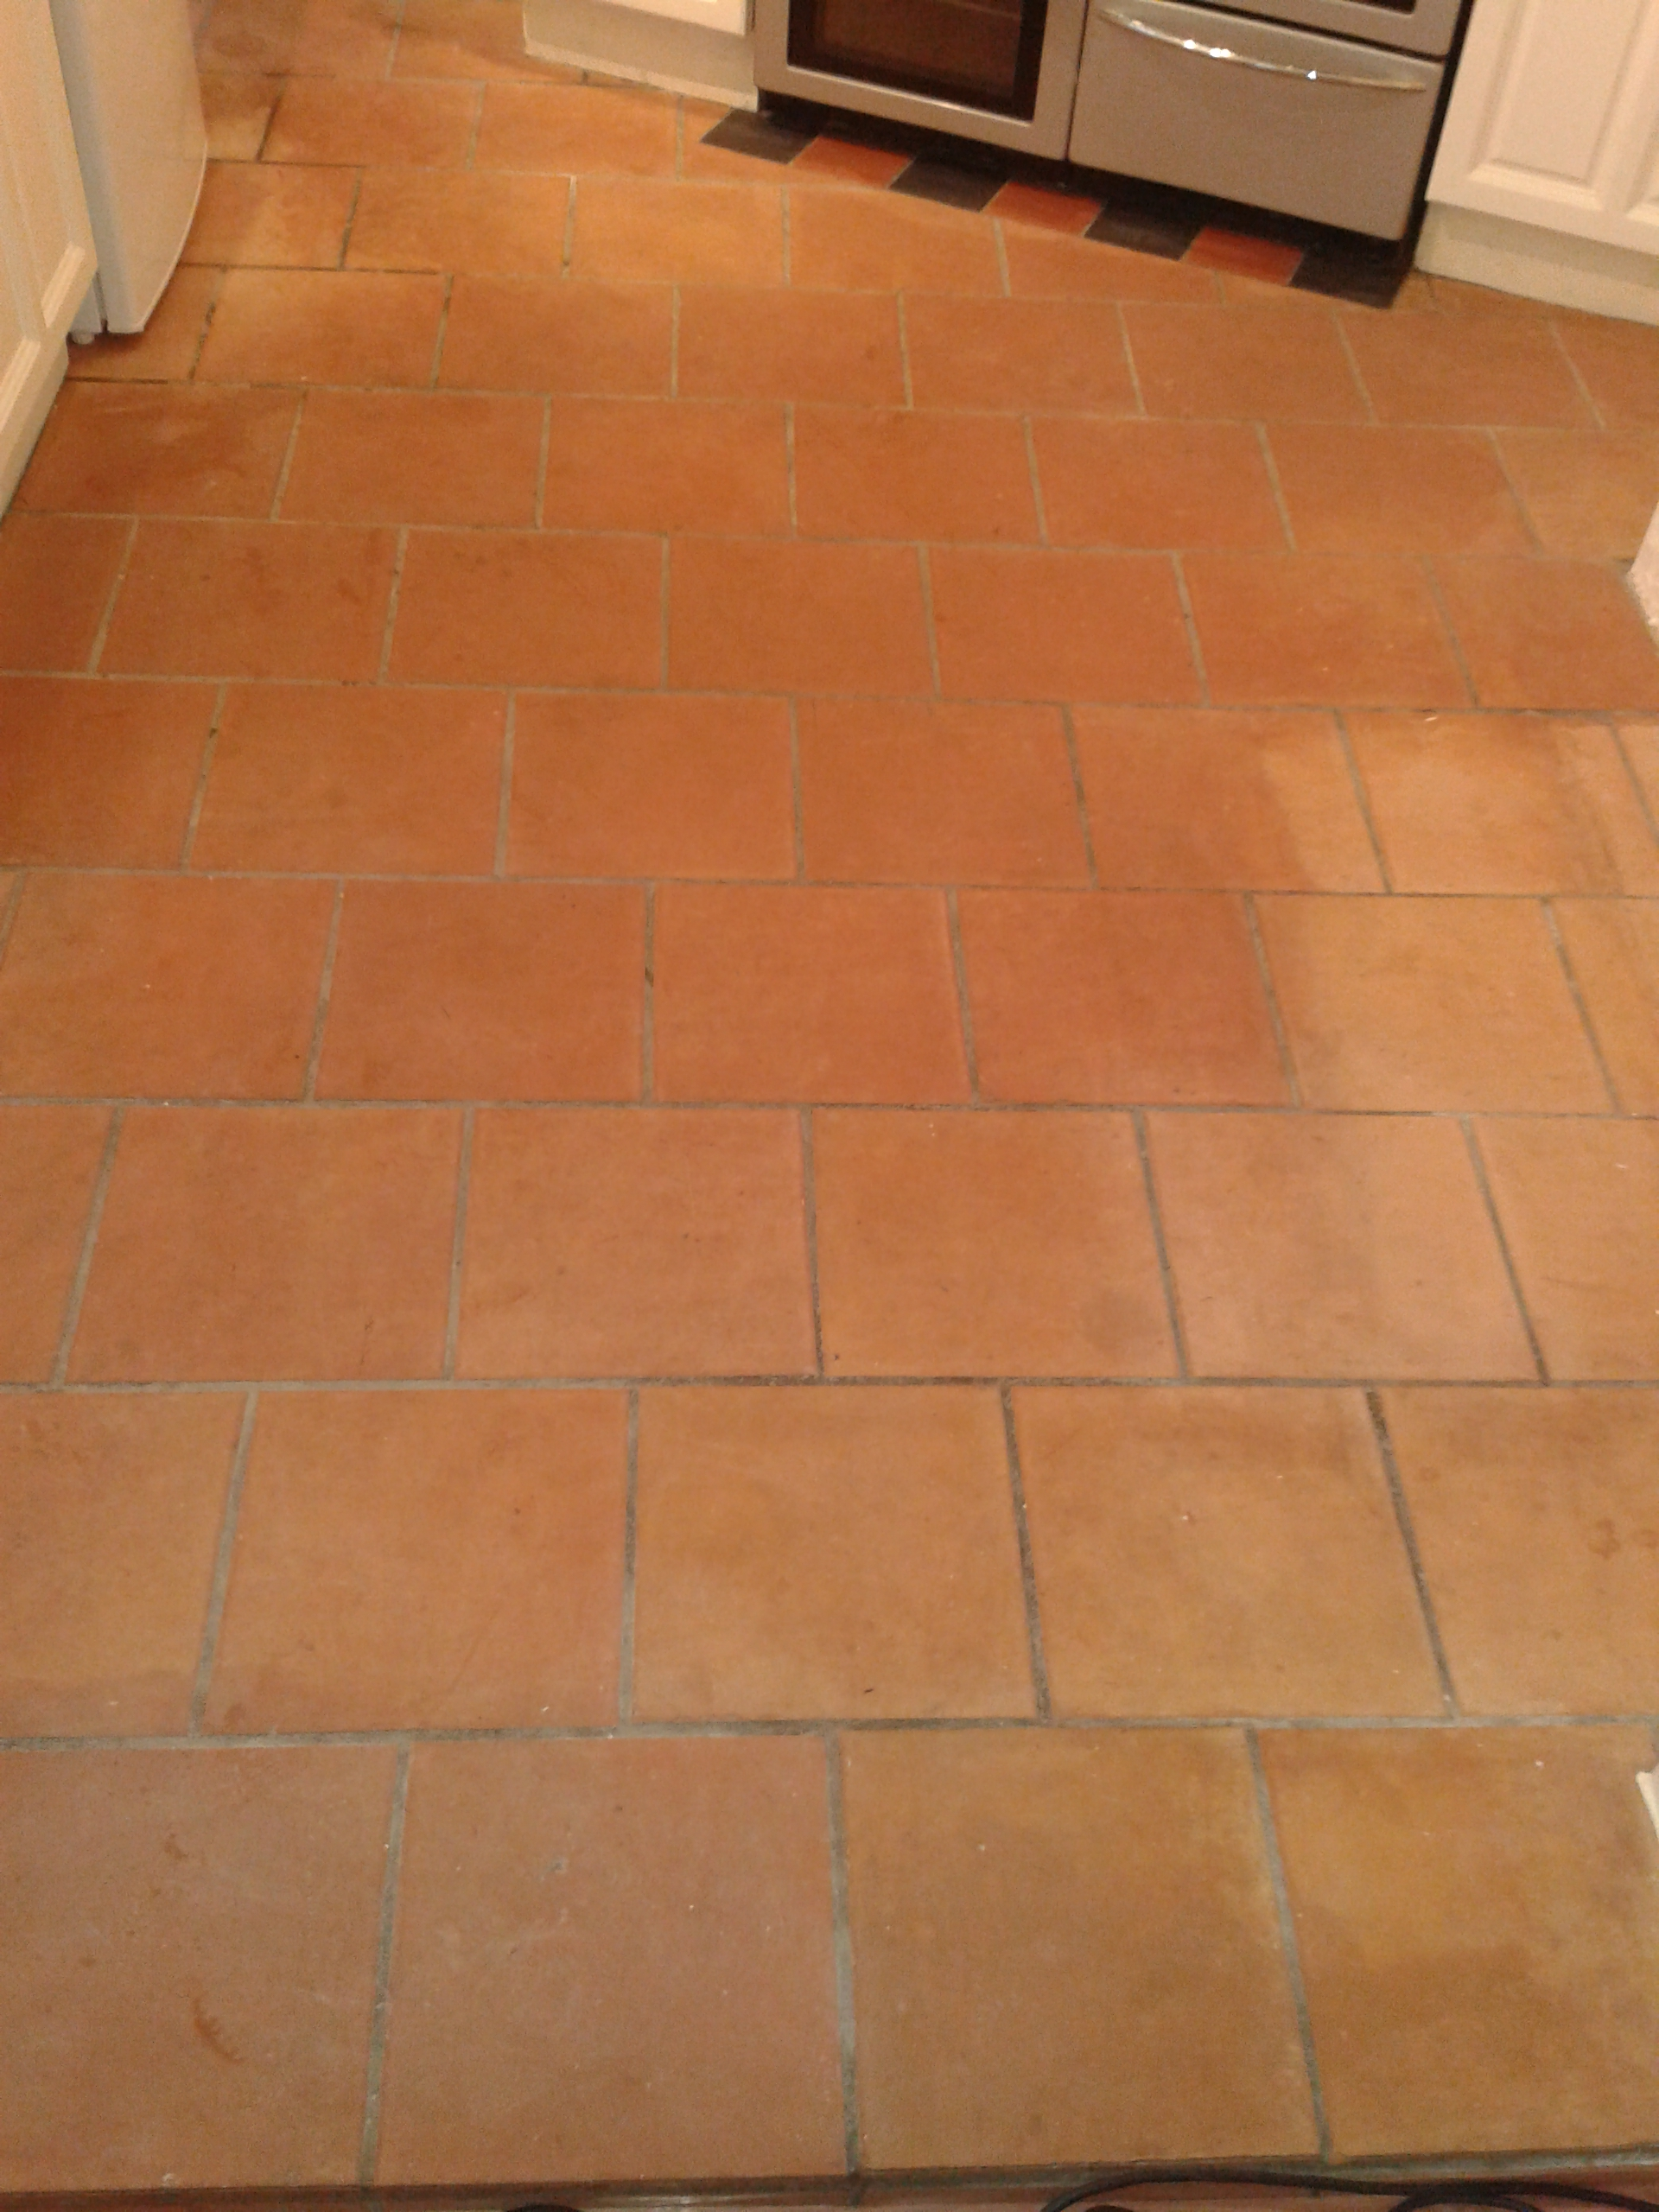 terracotta tiles | Shropshire Tile Doctor